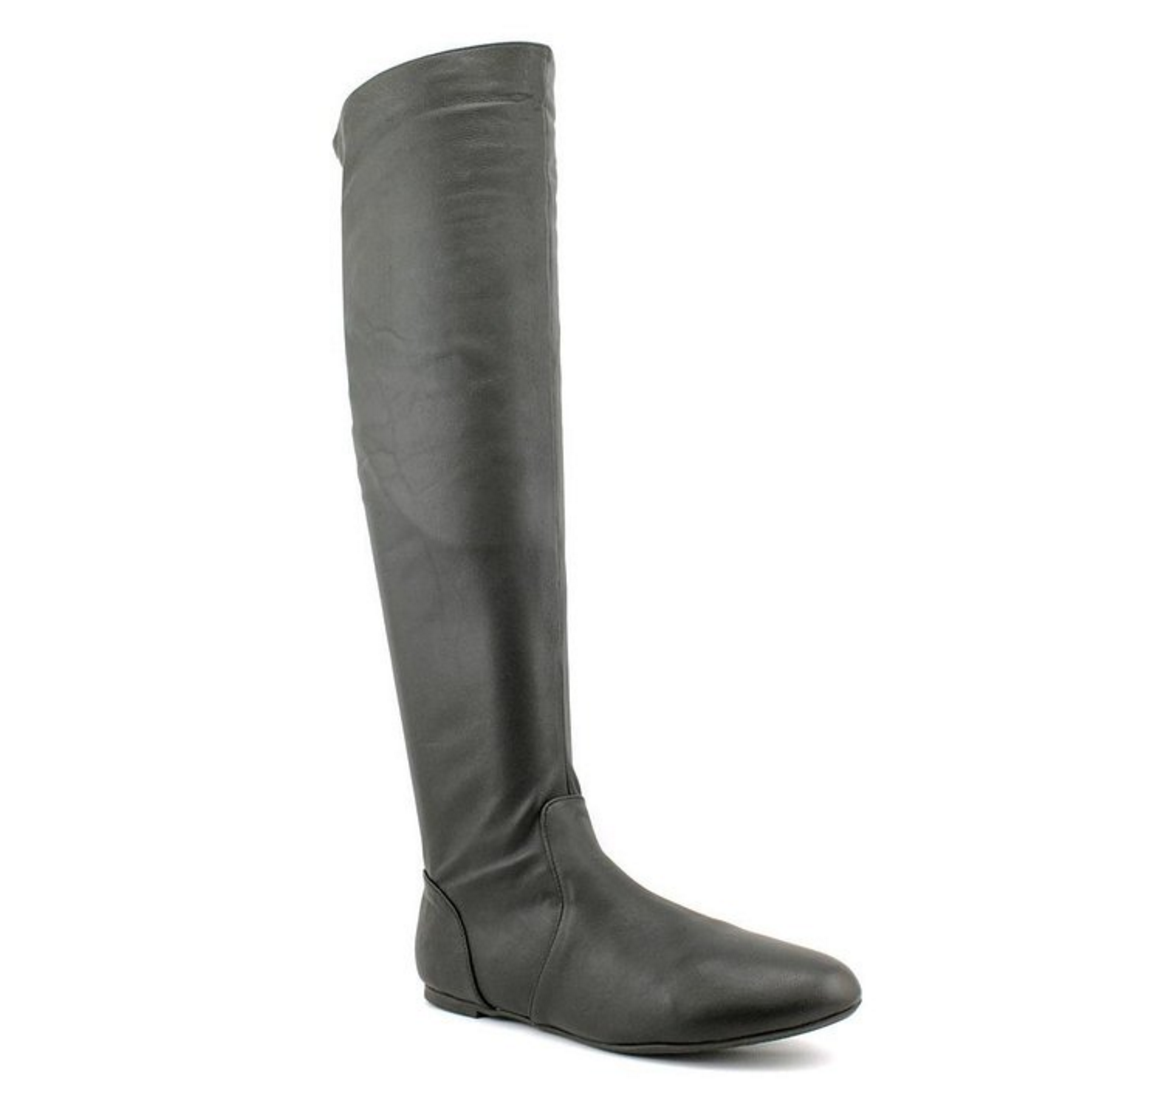 MaxStudio Women's Holden Over-the-Knee Flat Boot, Black Oily Suede